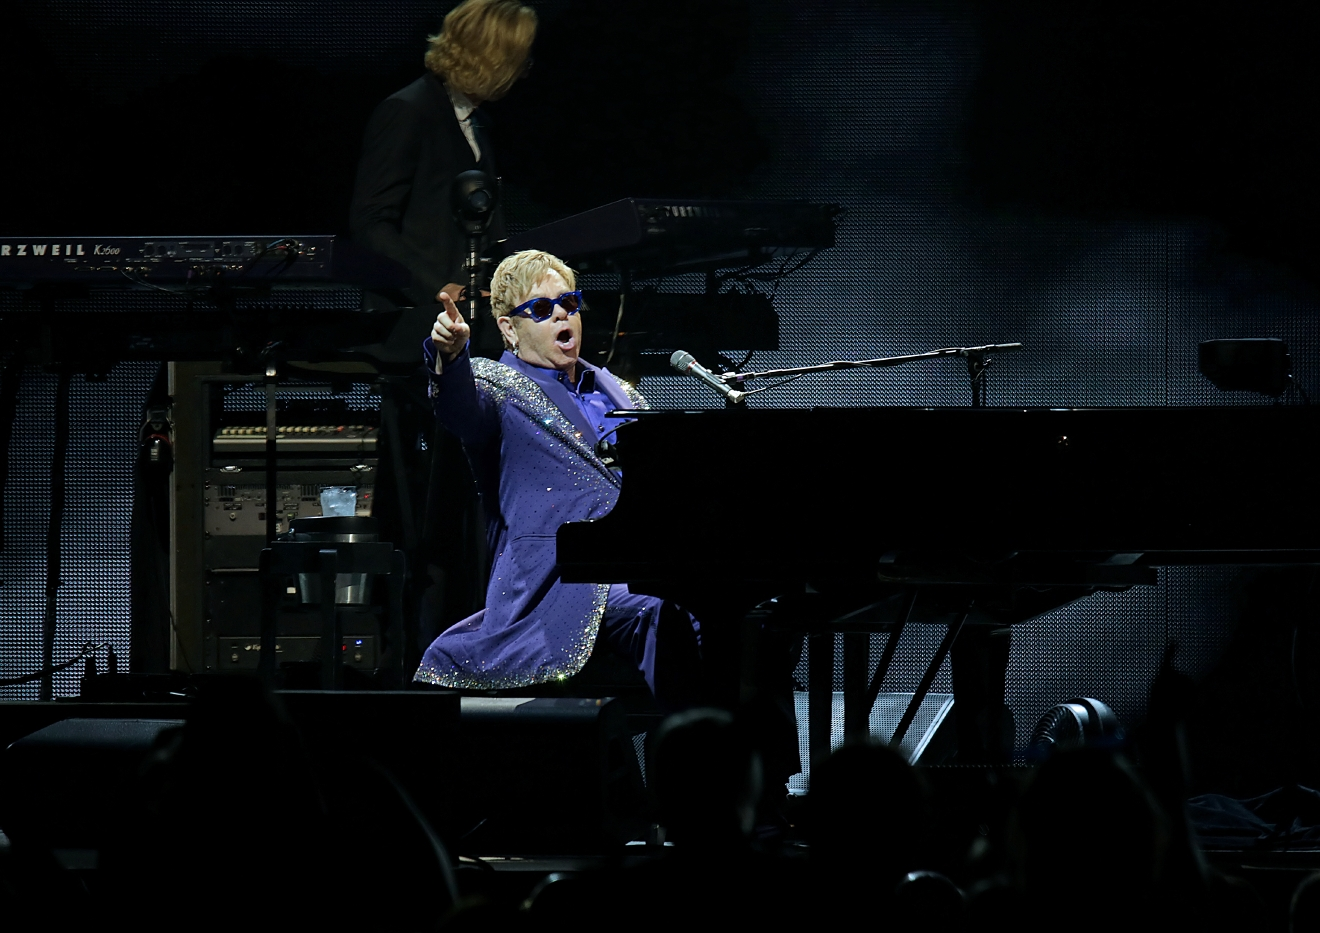 Elton John performs at Echo Arena Liverpool  Featuring: Elton John Where: Liverpool, United Kingdom When: 14 Jun 2016 Credit: Sakura/WENN.com